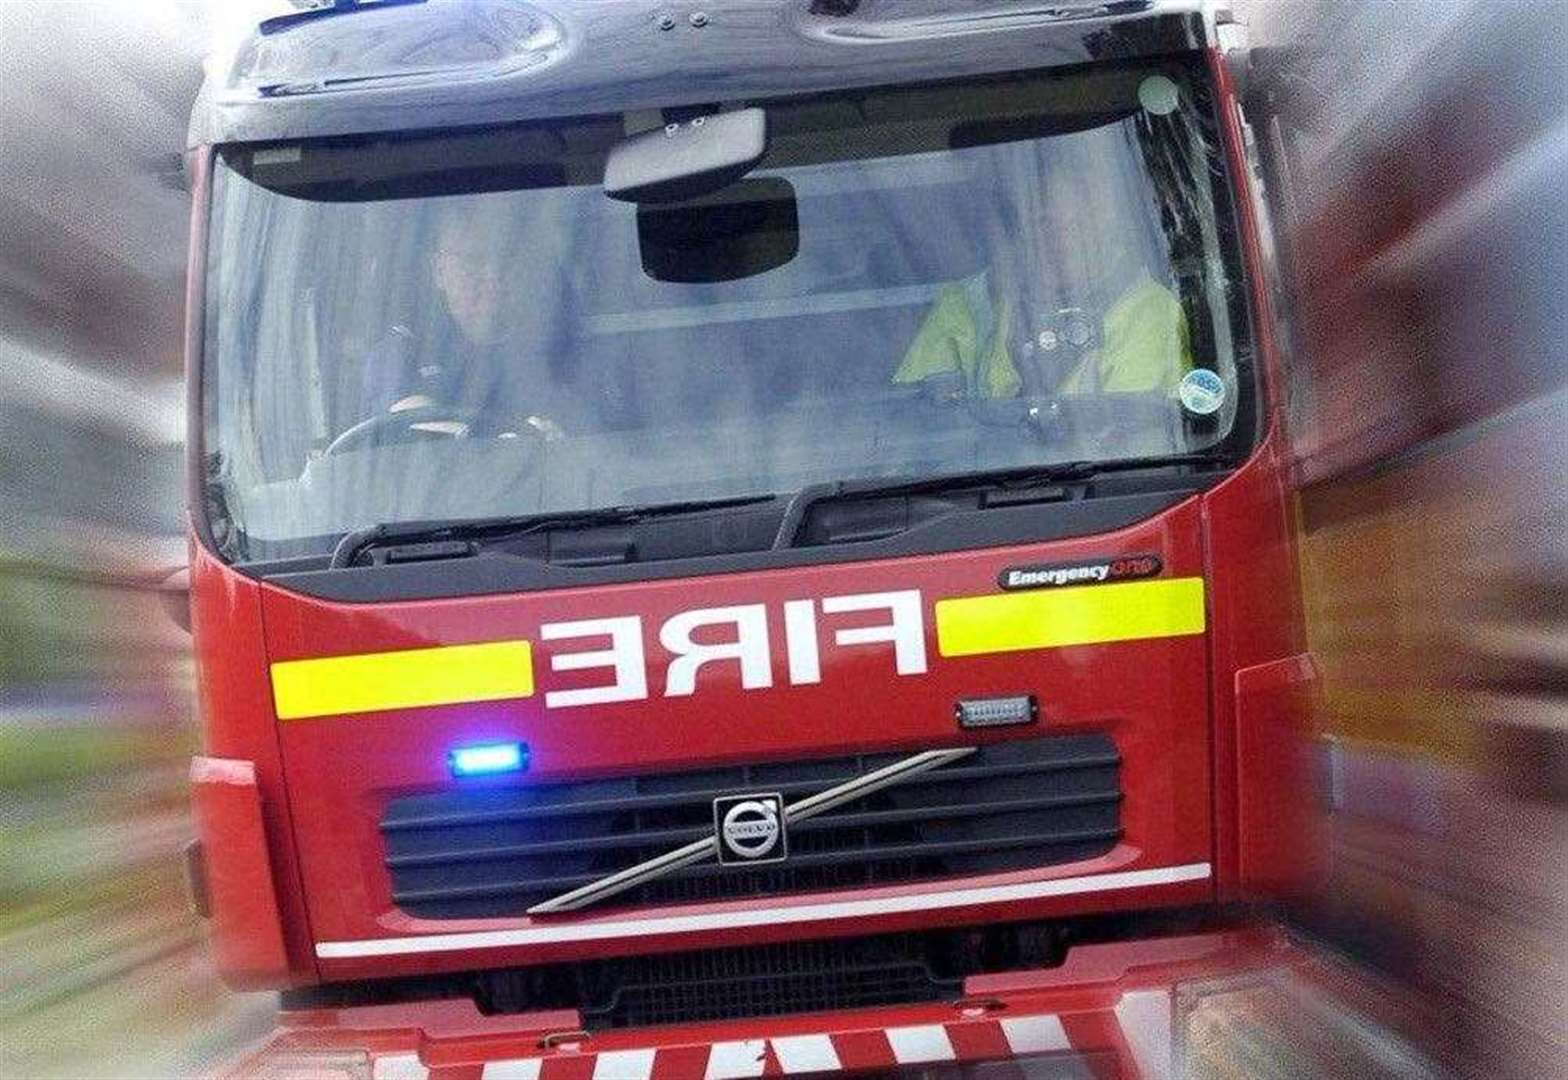 Firefighters called to car crash